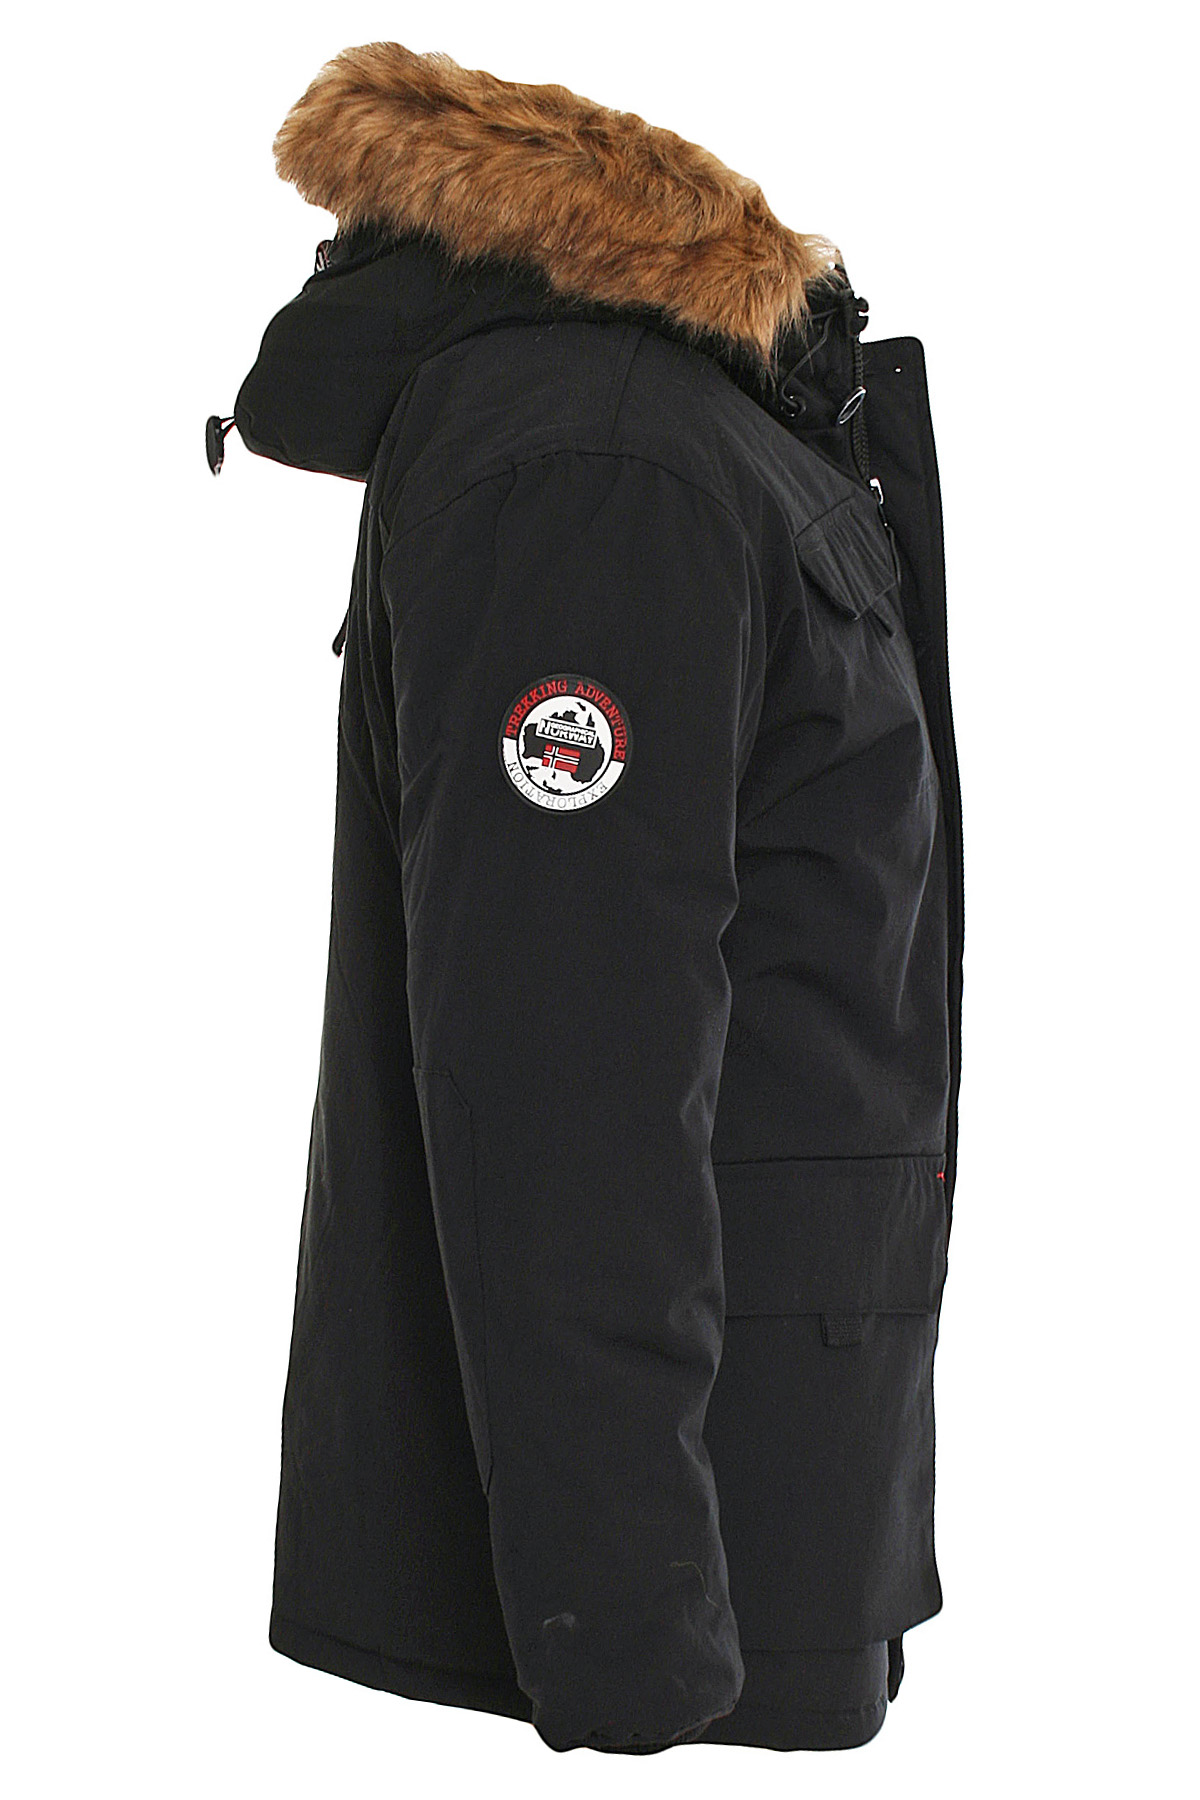 geographical norway herren winterjacke new athena winter parka jacke farben ebay. Black Bedroom Furniture Sets. Home Design Ideas